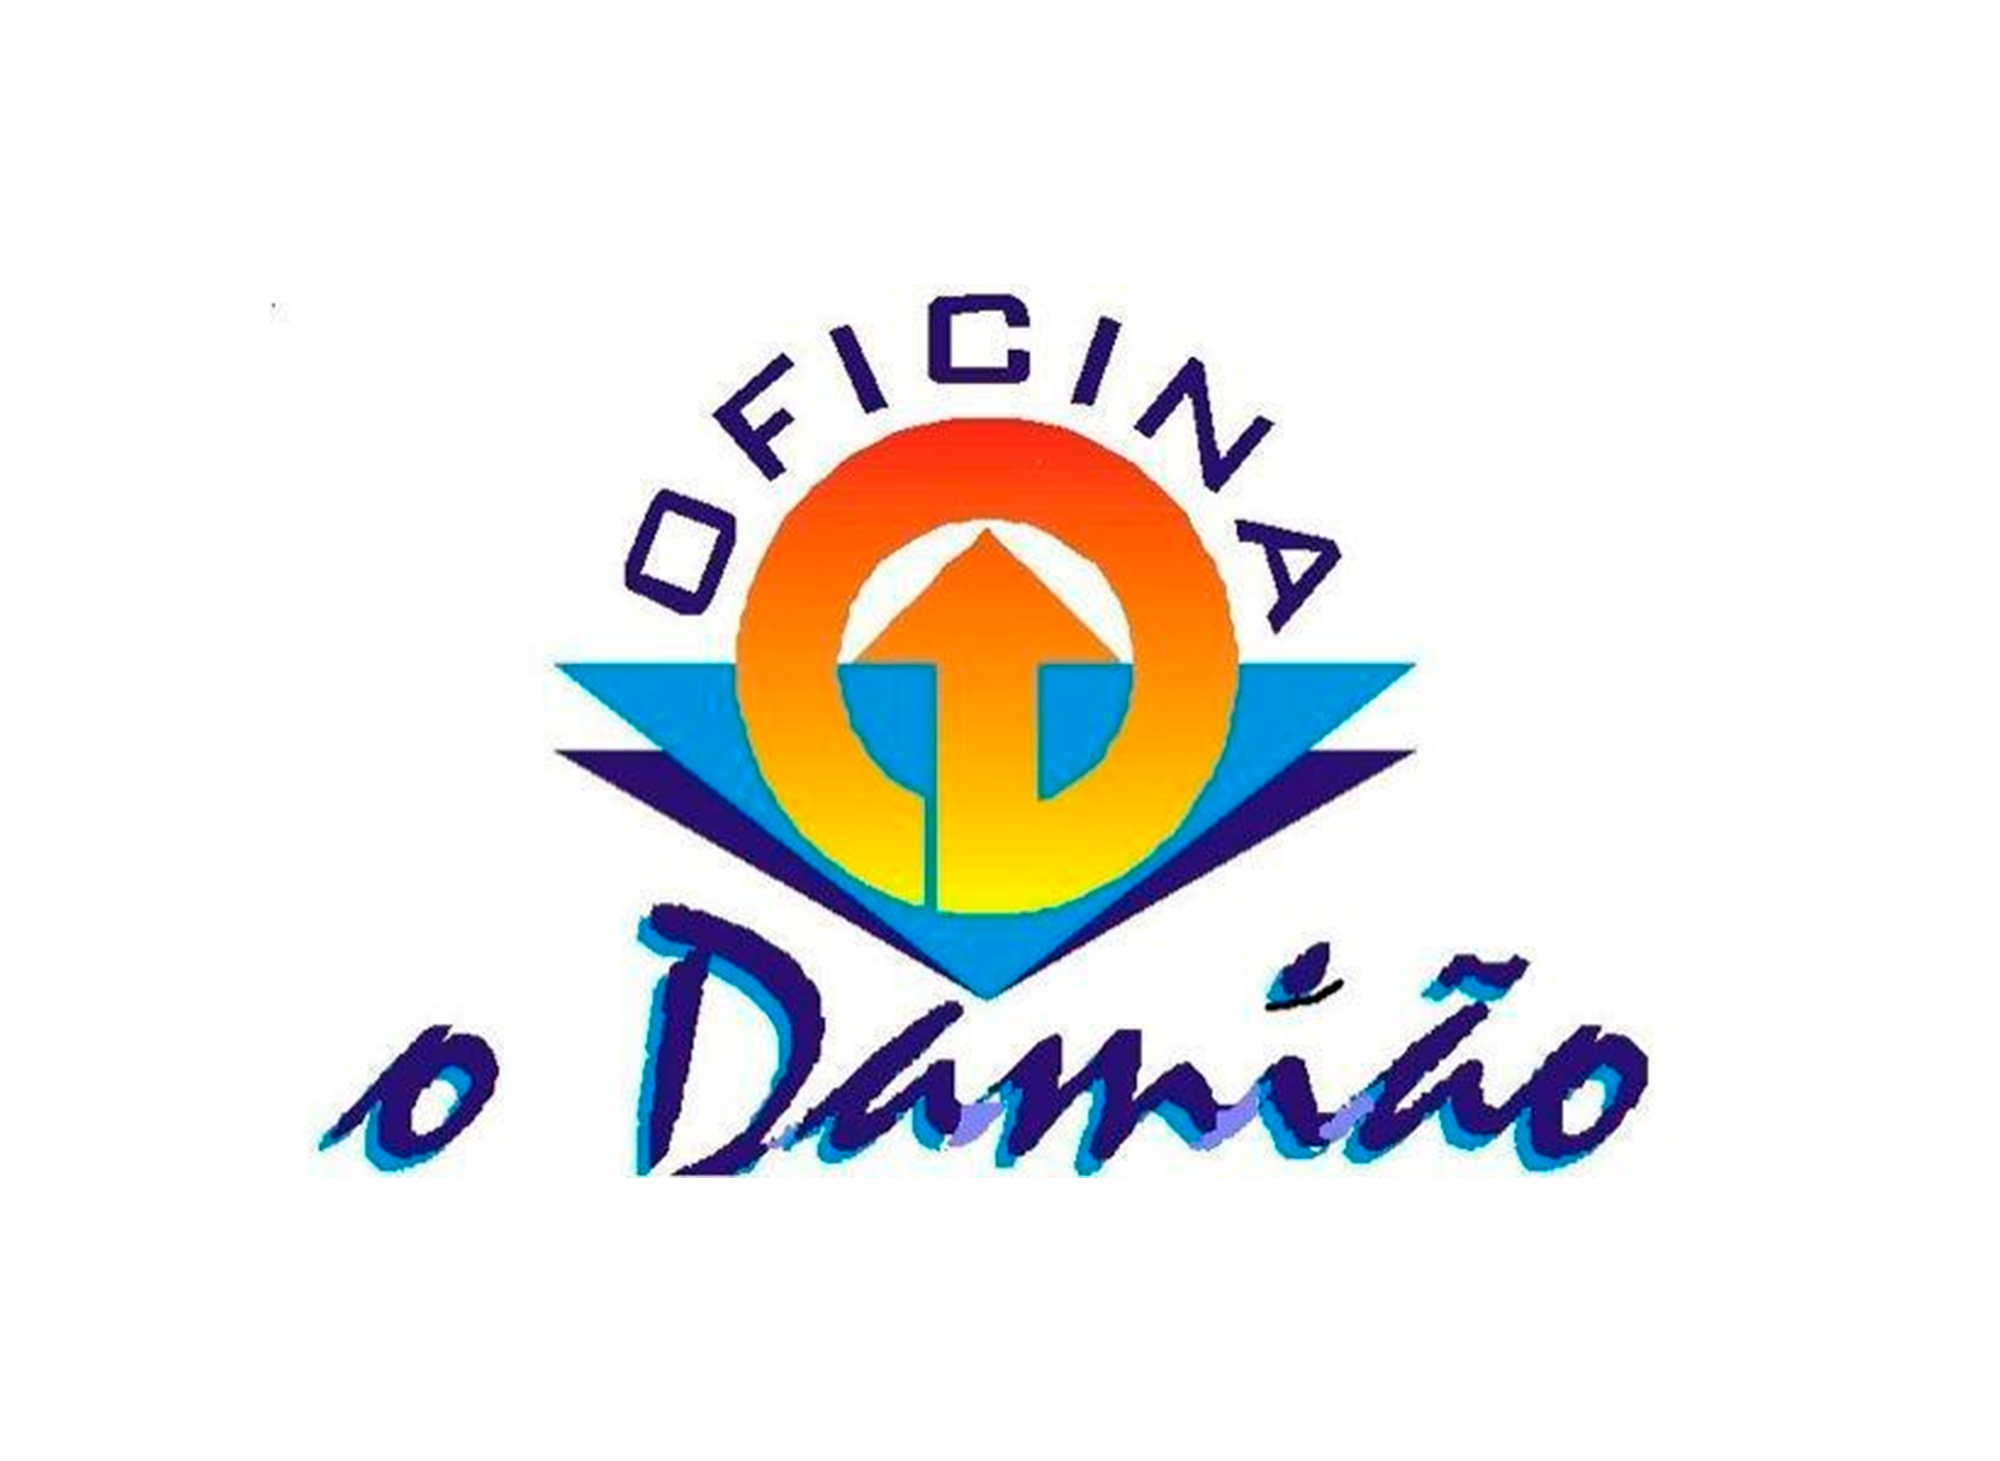 oficina-o-damiao-clientes-atendidos-agencia-diretriz-digital-marketing-fortaleza